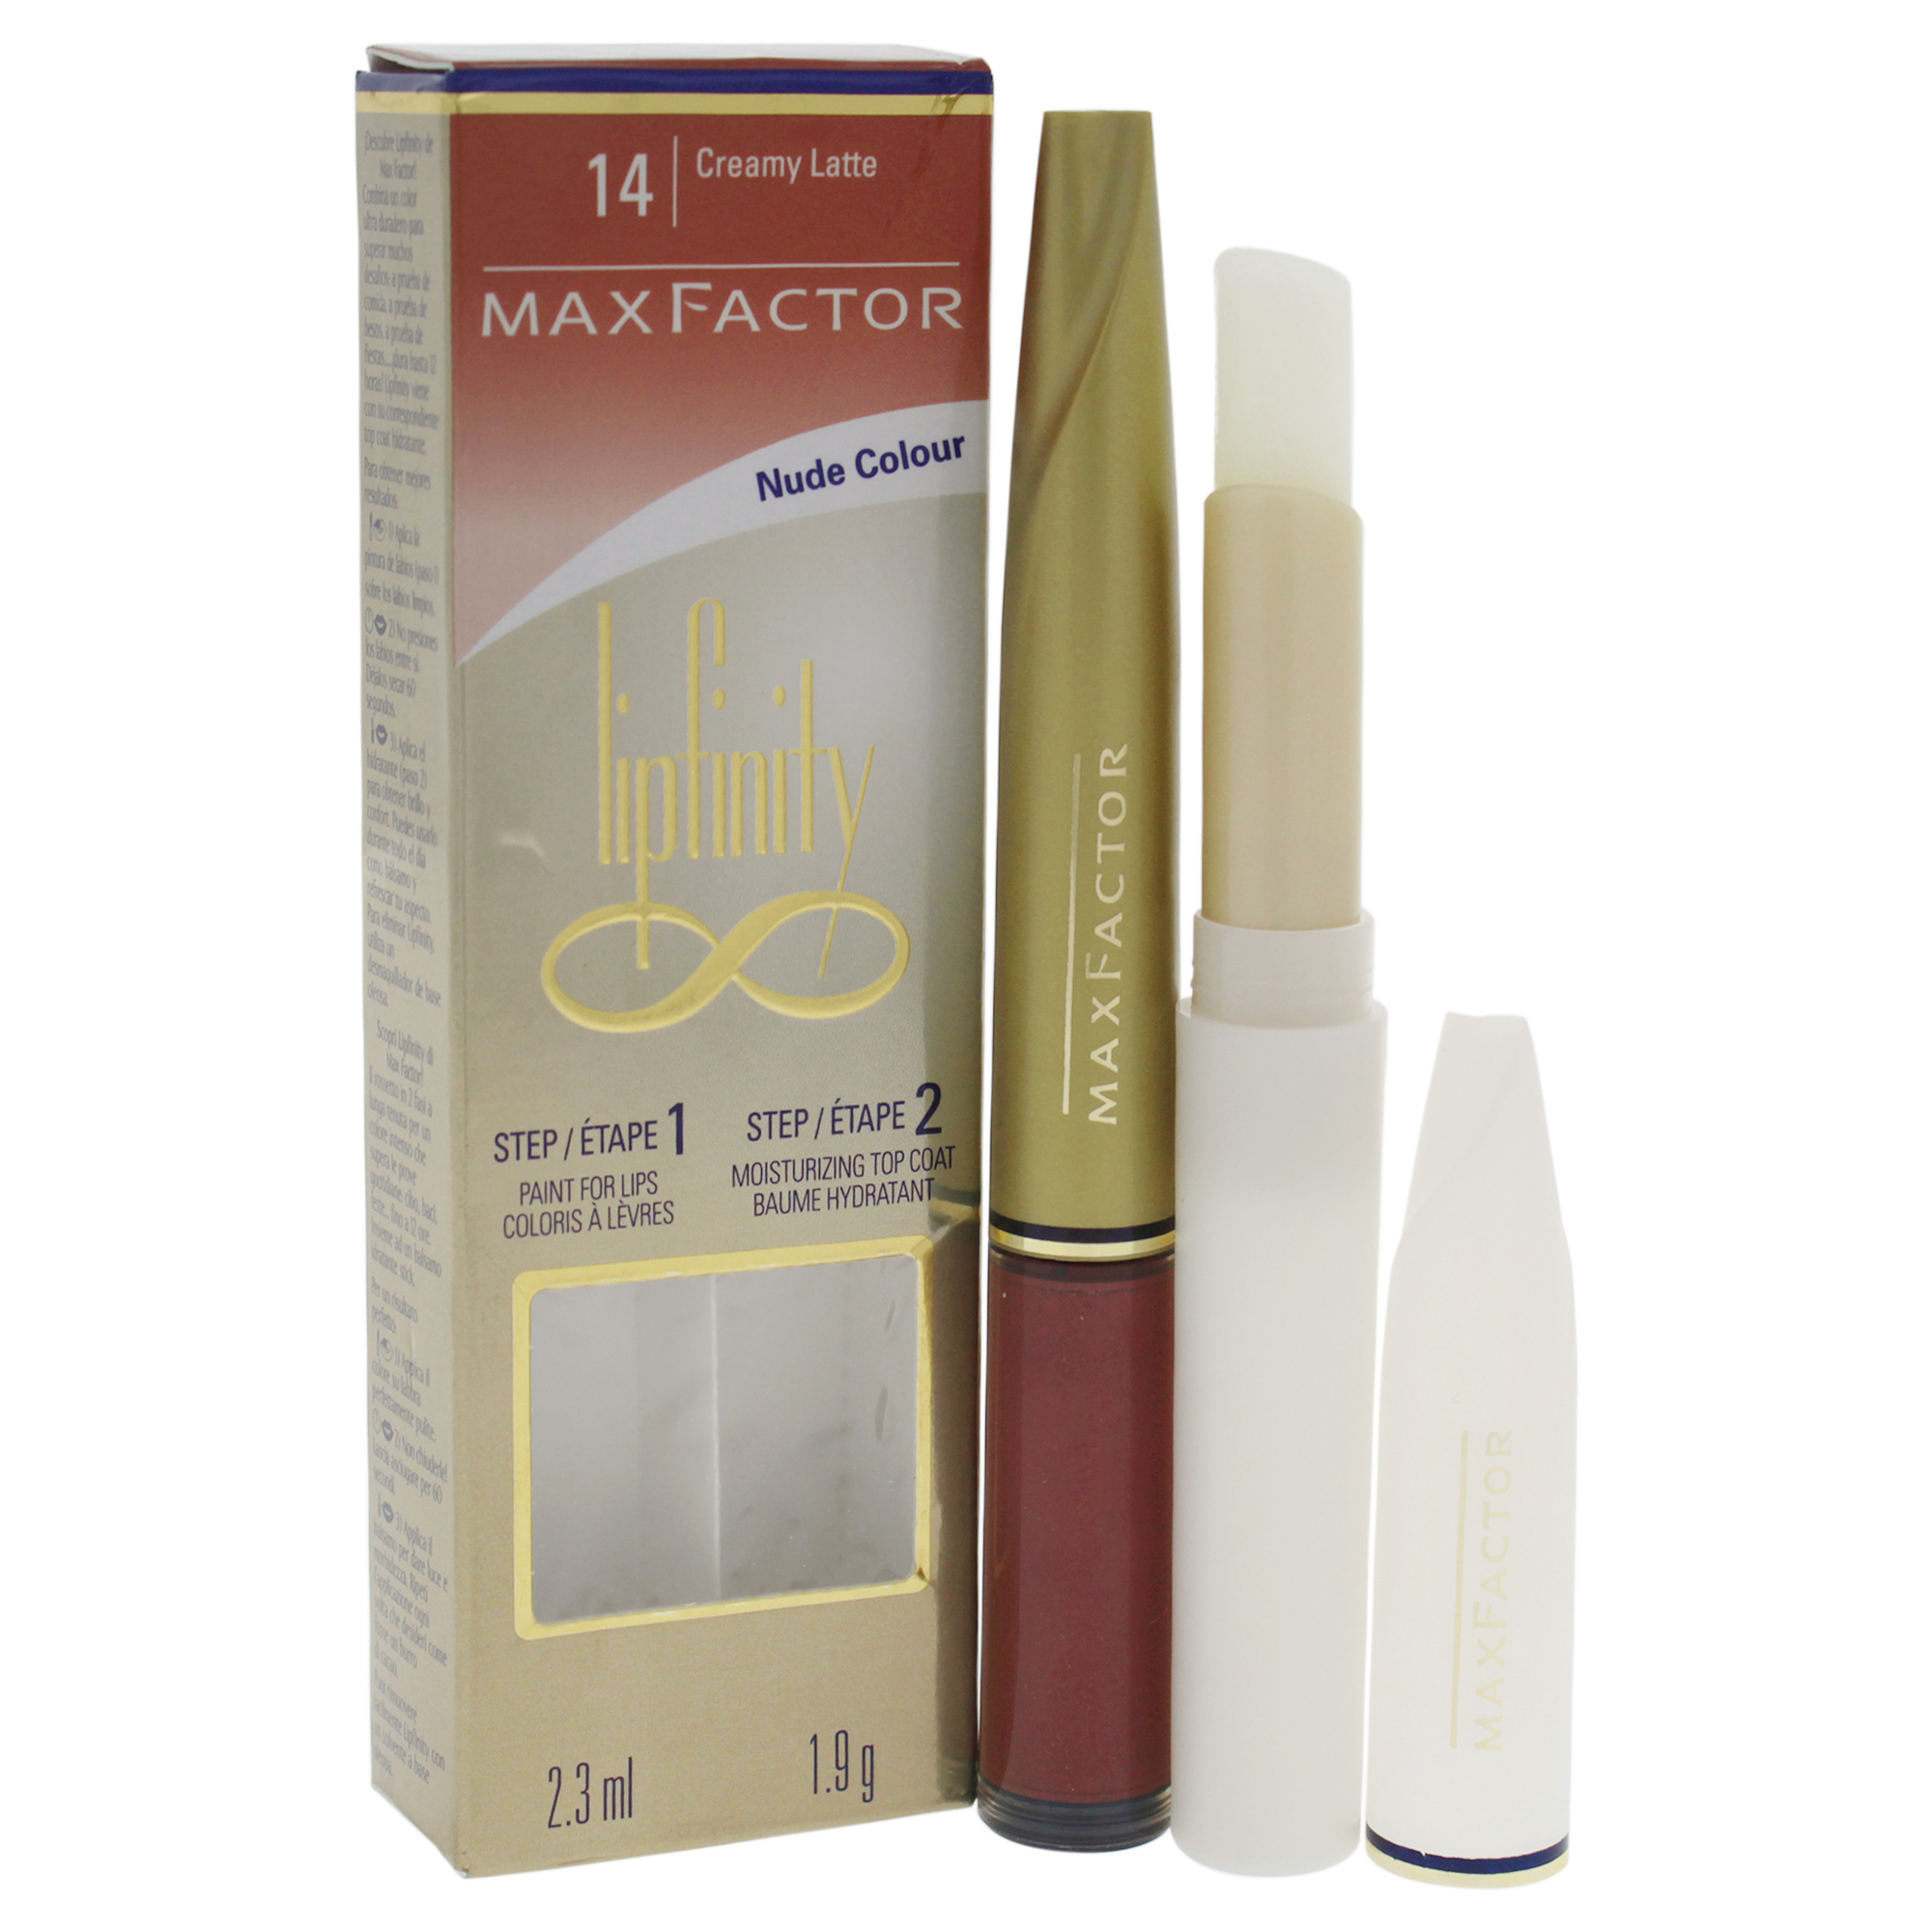 # 14 Creamy Latte By Max Factor For Women